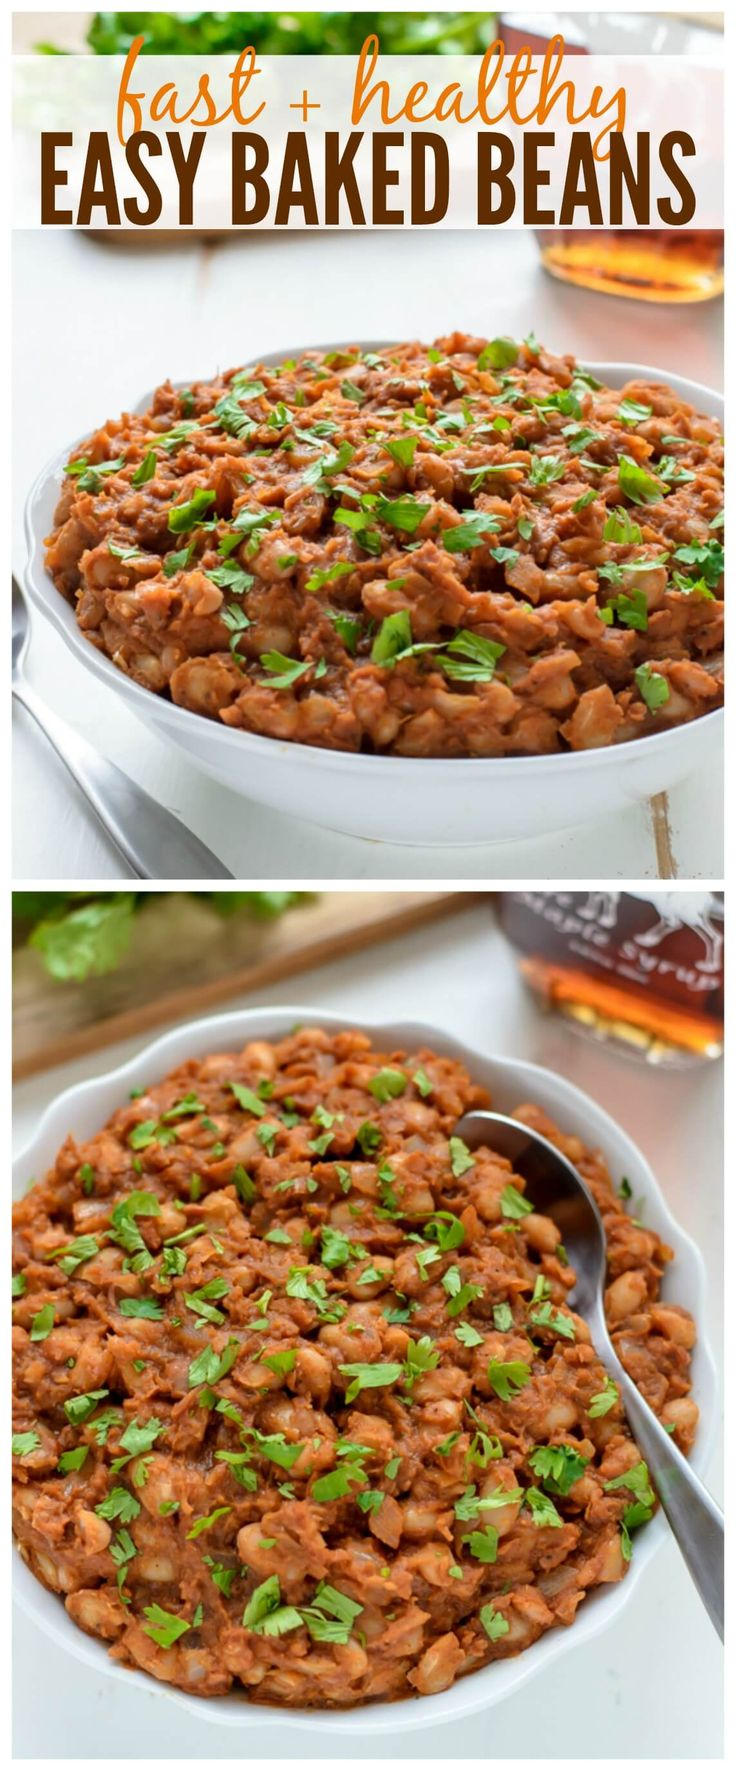 Easy Baked Beans made of healthy, real ingredients that are ready to go in only 30 minutes! www.wellplated.com | @wellplated